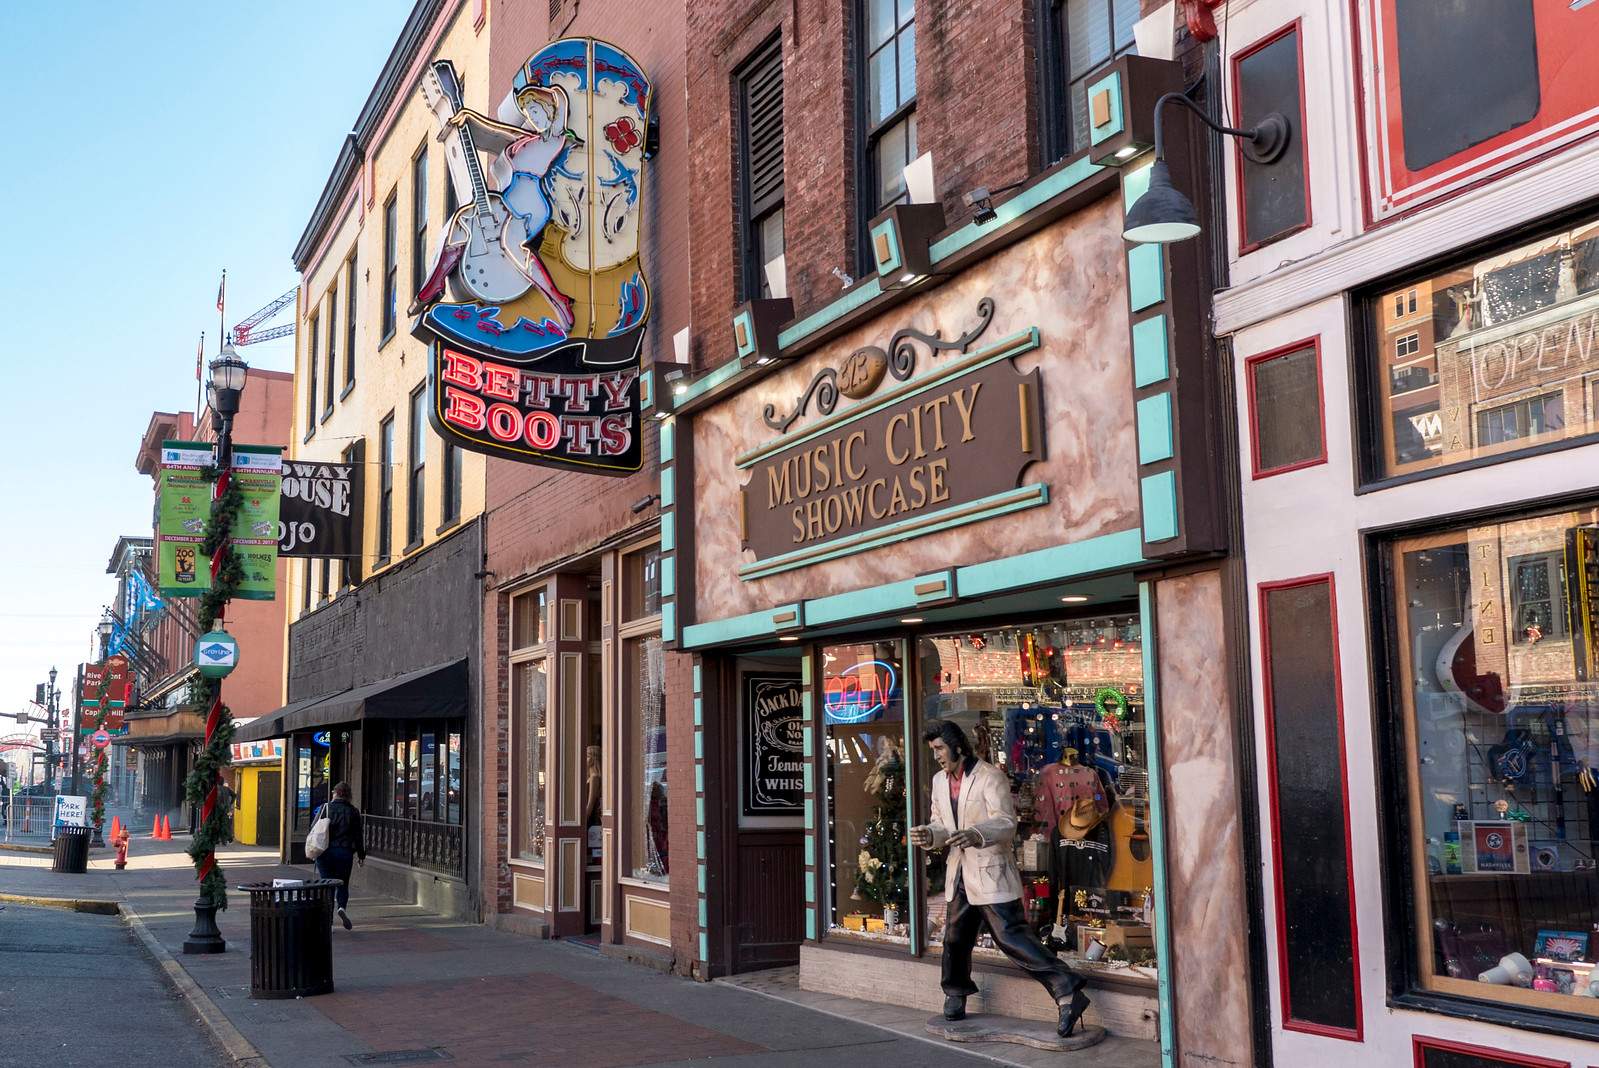 Things to Do in Downtown Nashville: Best Attractions - Broadway and Honky Tonk Row